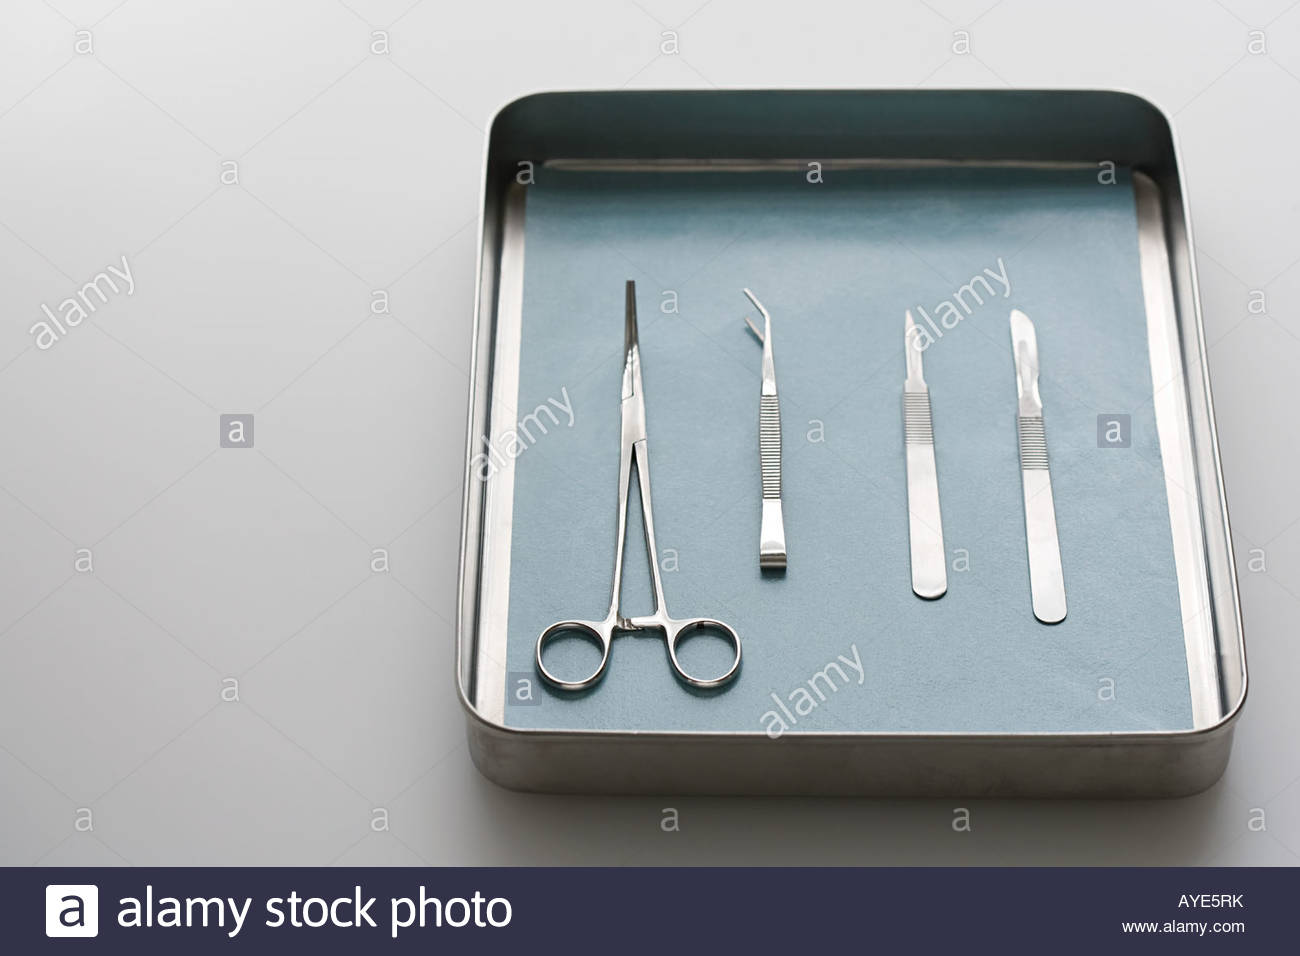 Surgical equipment - Stock Image